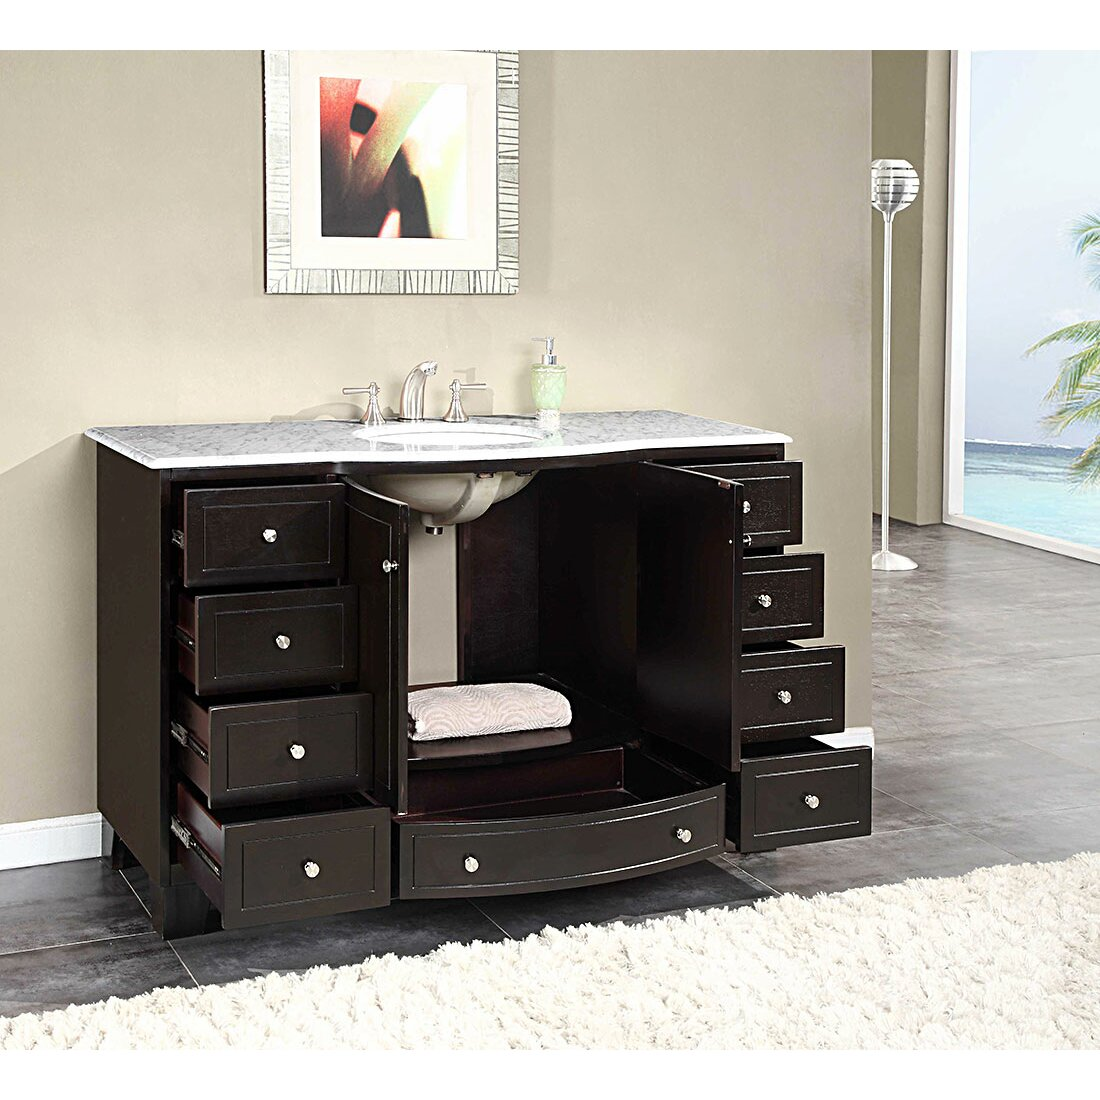 Bathroom single vanity - Silkroad Exclusive Naomi 55 Quot Single Bathroom Vanity Set